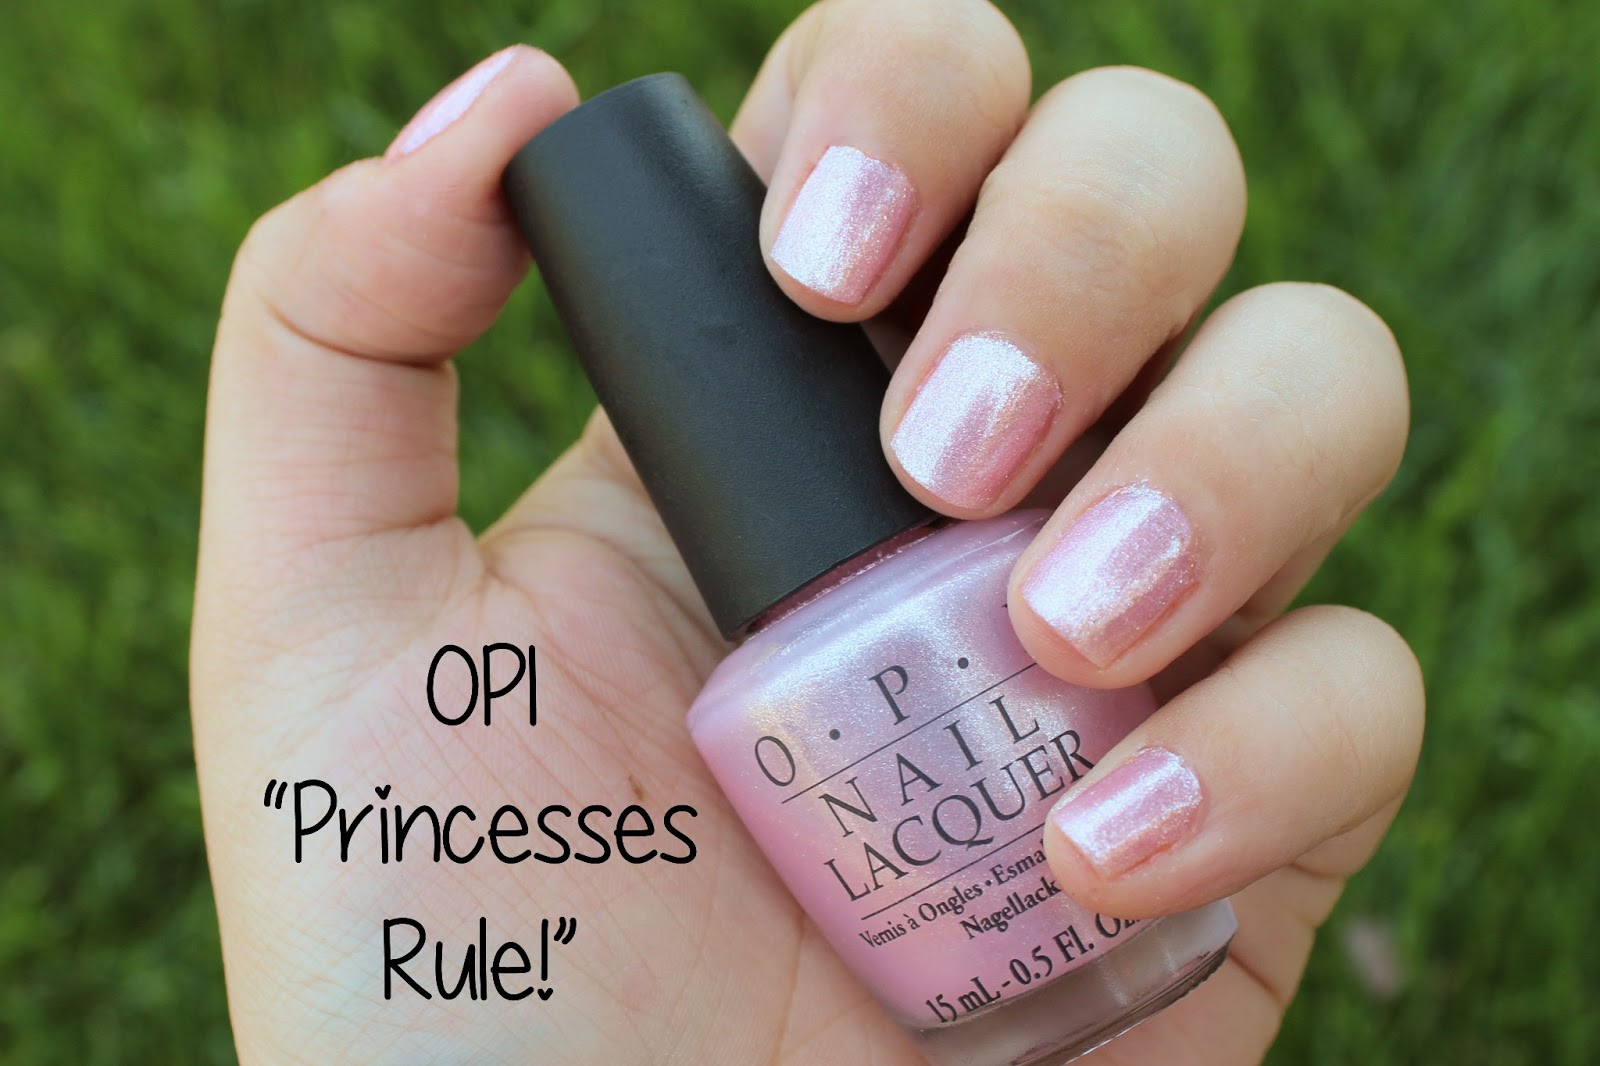 Opi Princesses Rule Swatch Review